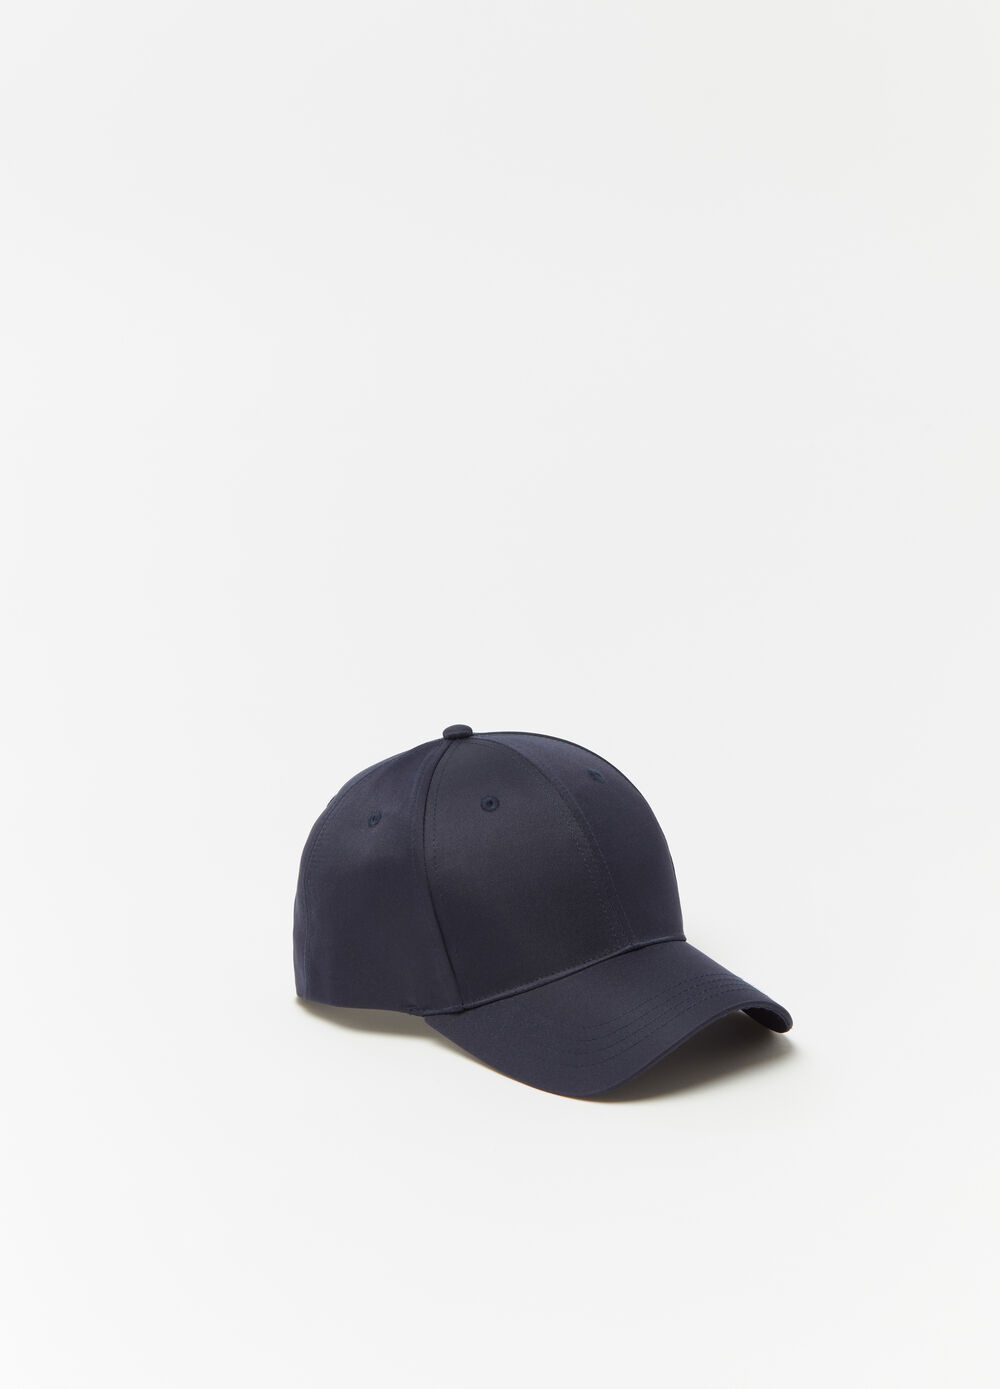 Nylon baseball cap with adjustable buckle